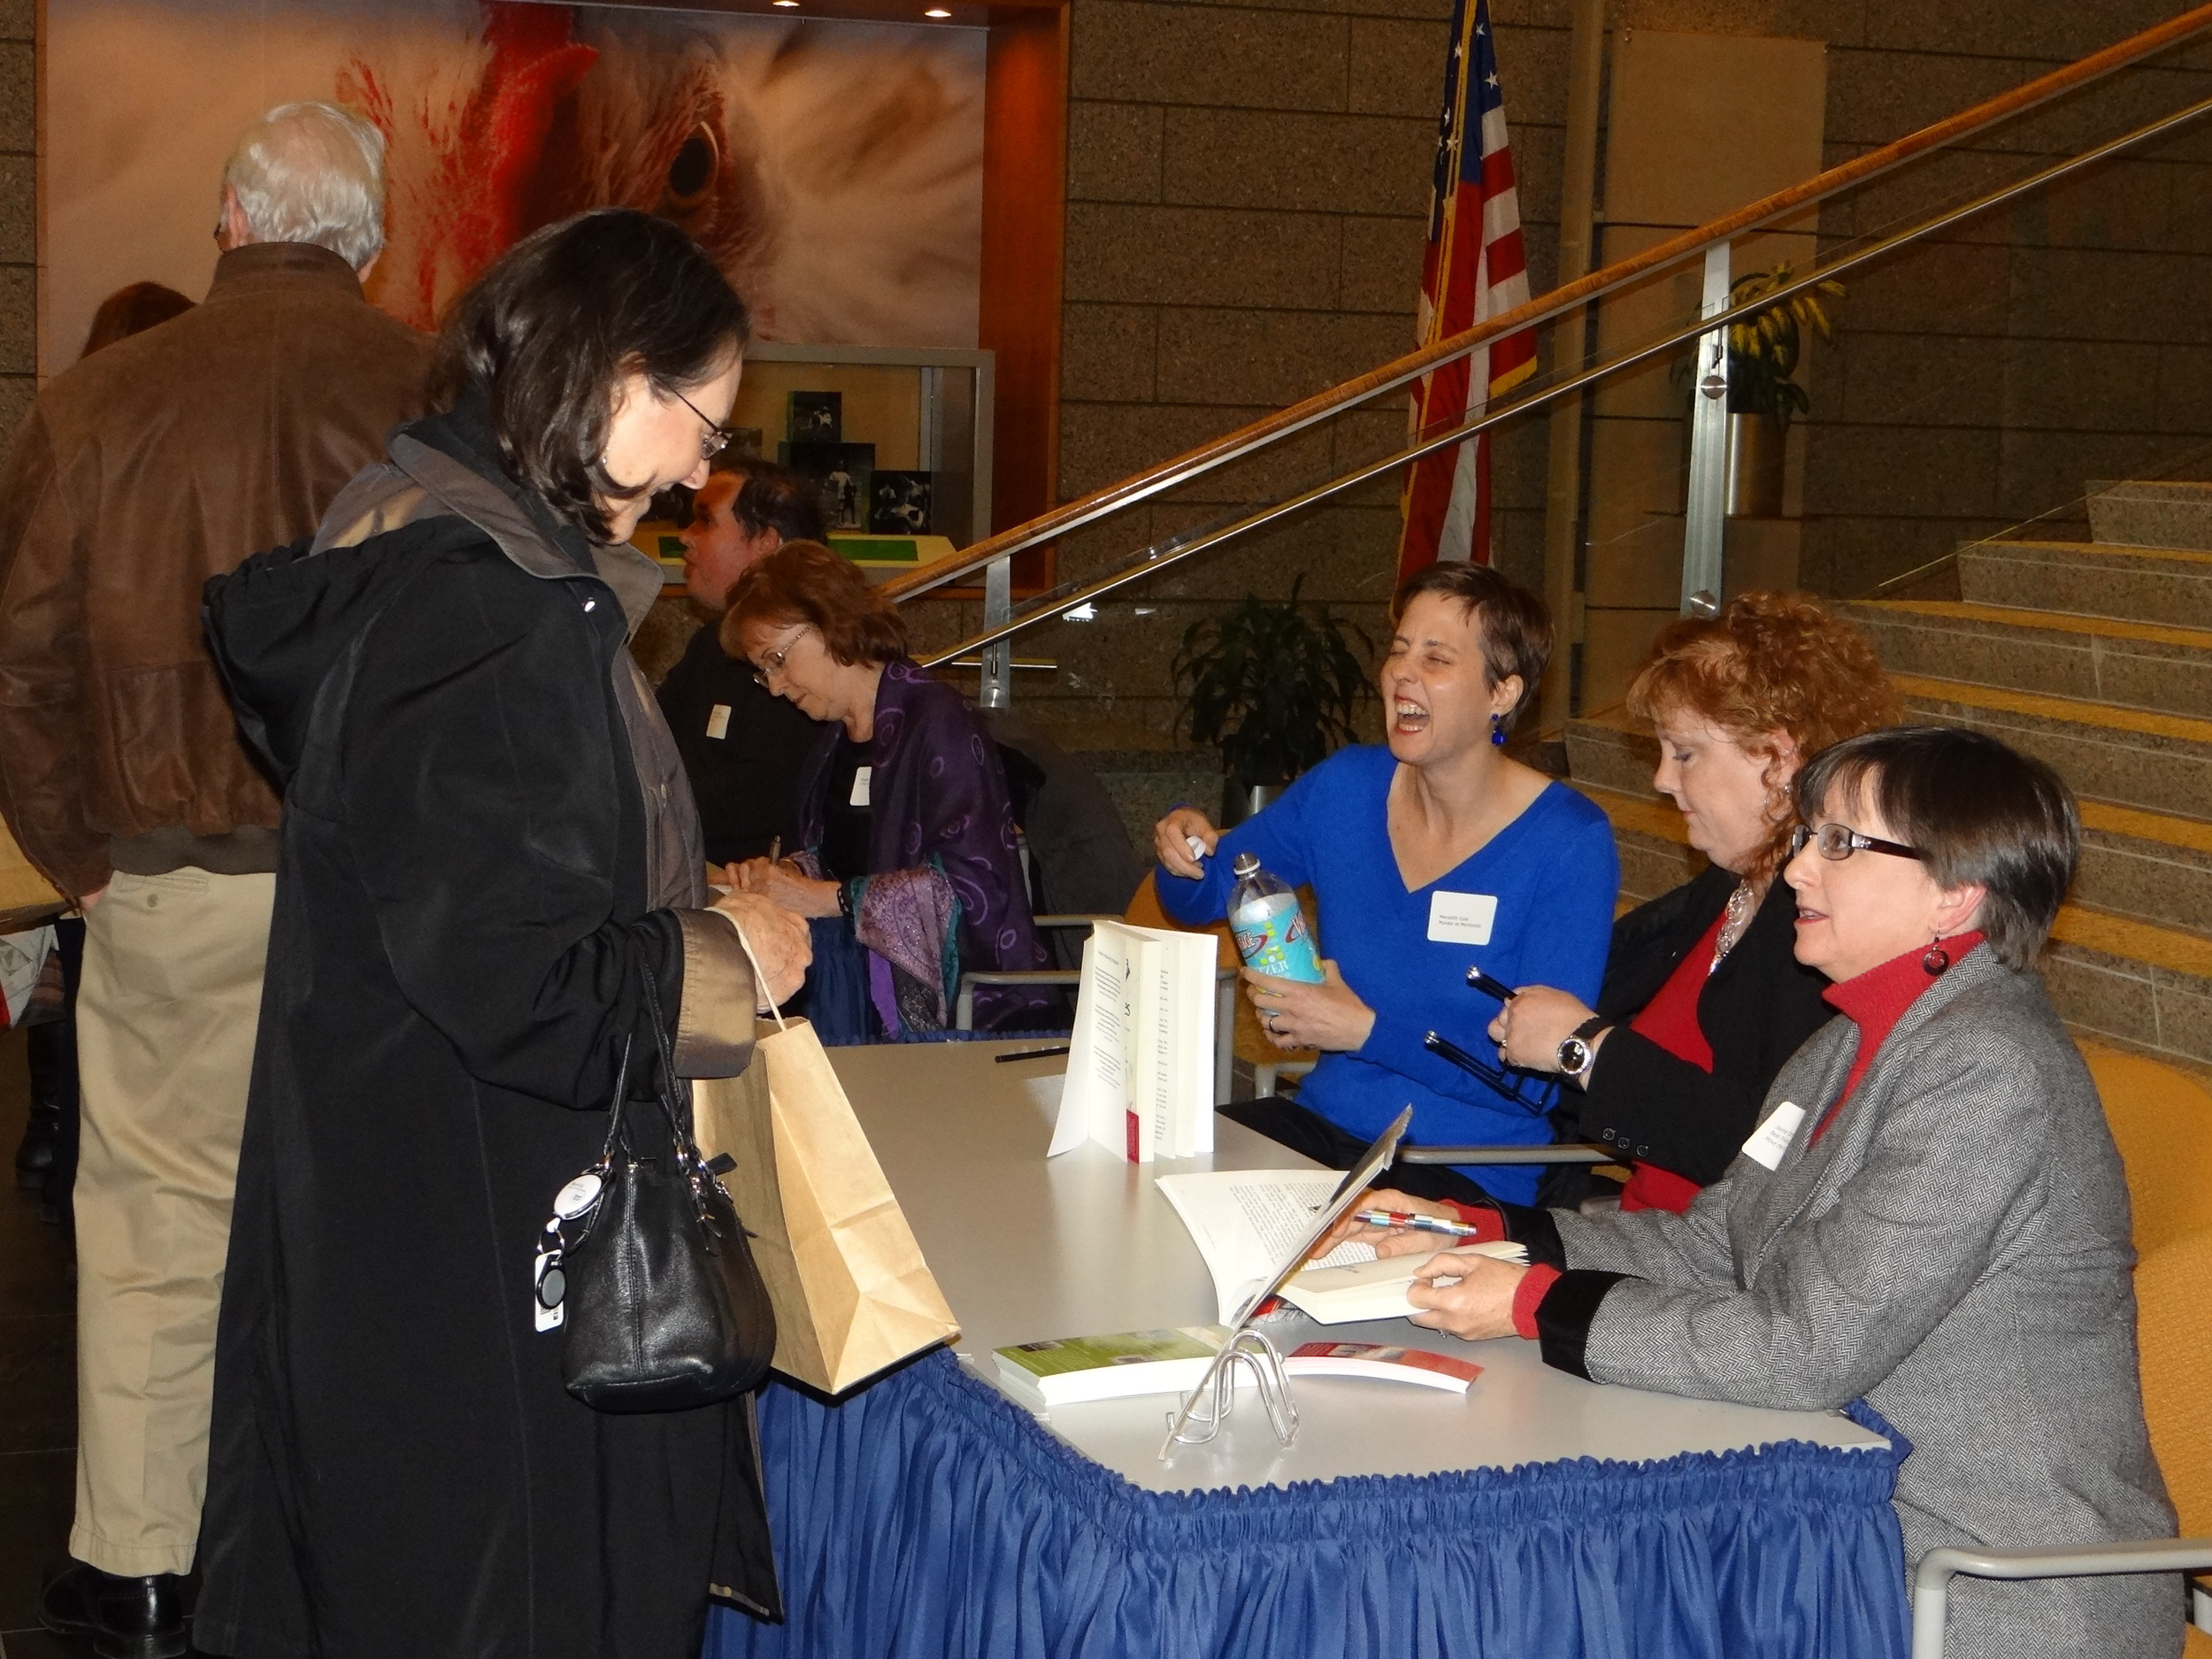 Meredith Cole, Me, and Jayne Ormerod at the Library of Virginia in Richmond, VA